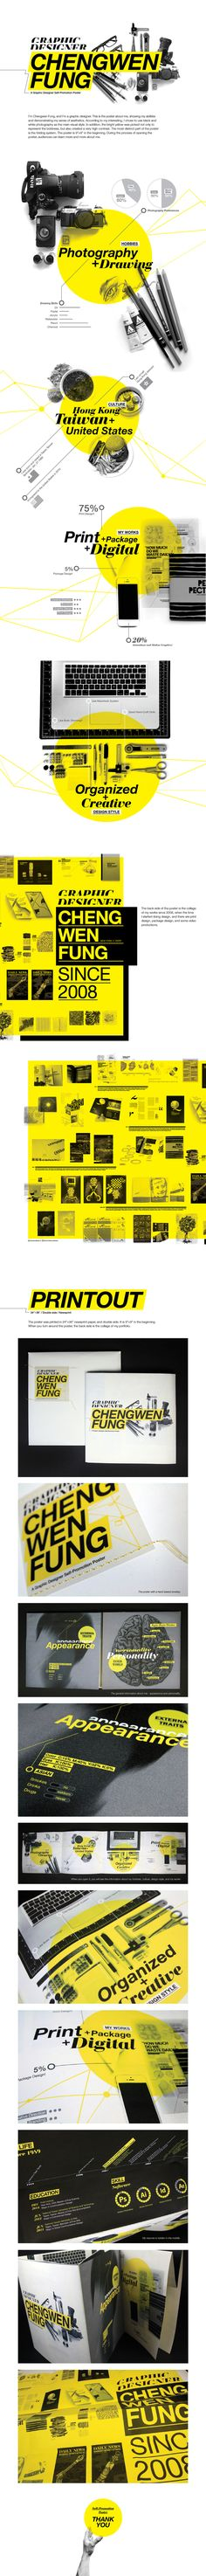 Self-Promotion poster by CHENGWEN fung, via Behance.  Nice web type and branding all-around.  #branding #typography